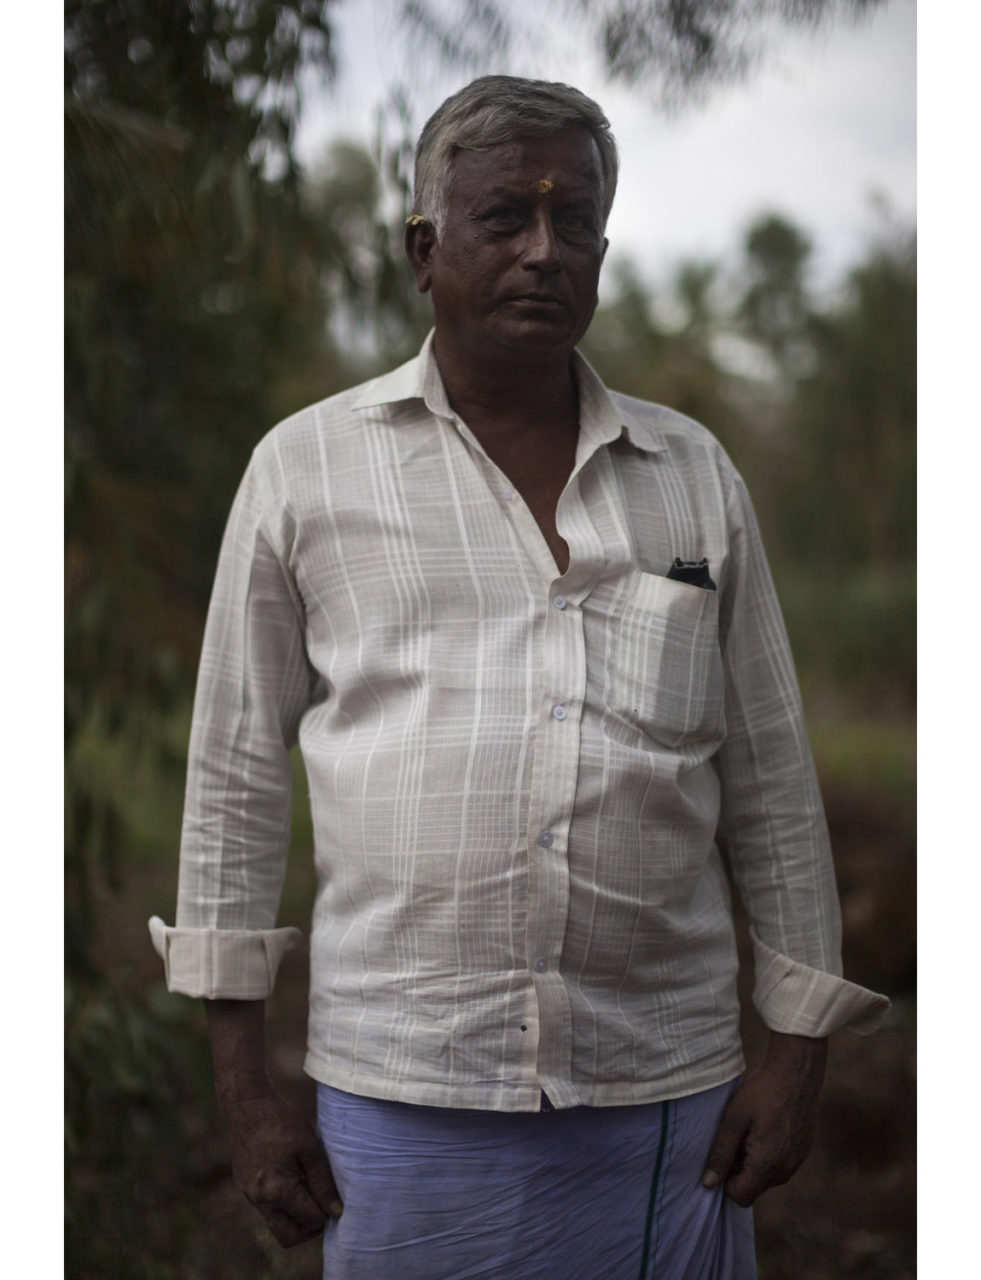 Basvegowda (49), a sugarcane farmer from the village of Hanmanth Nagar. His debts amount to 1 lakh rupees (1,400 euros).